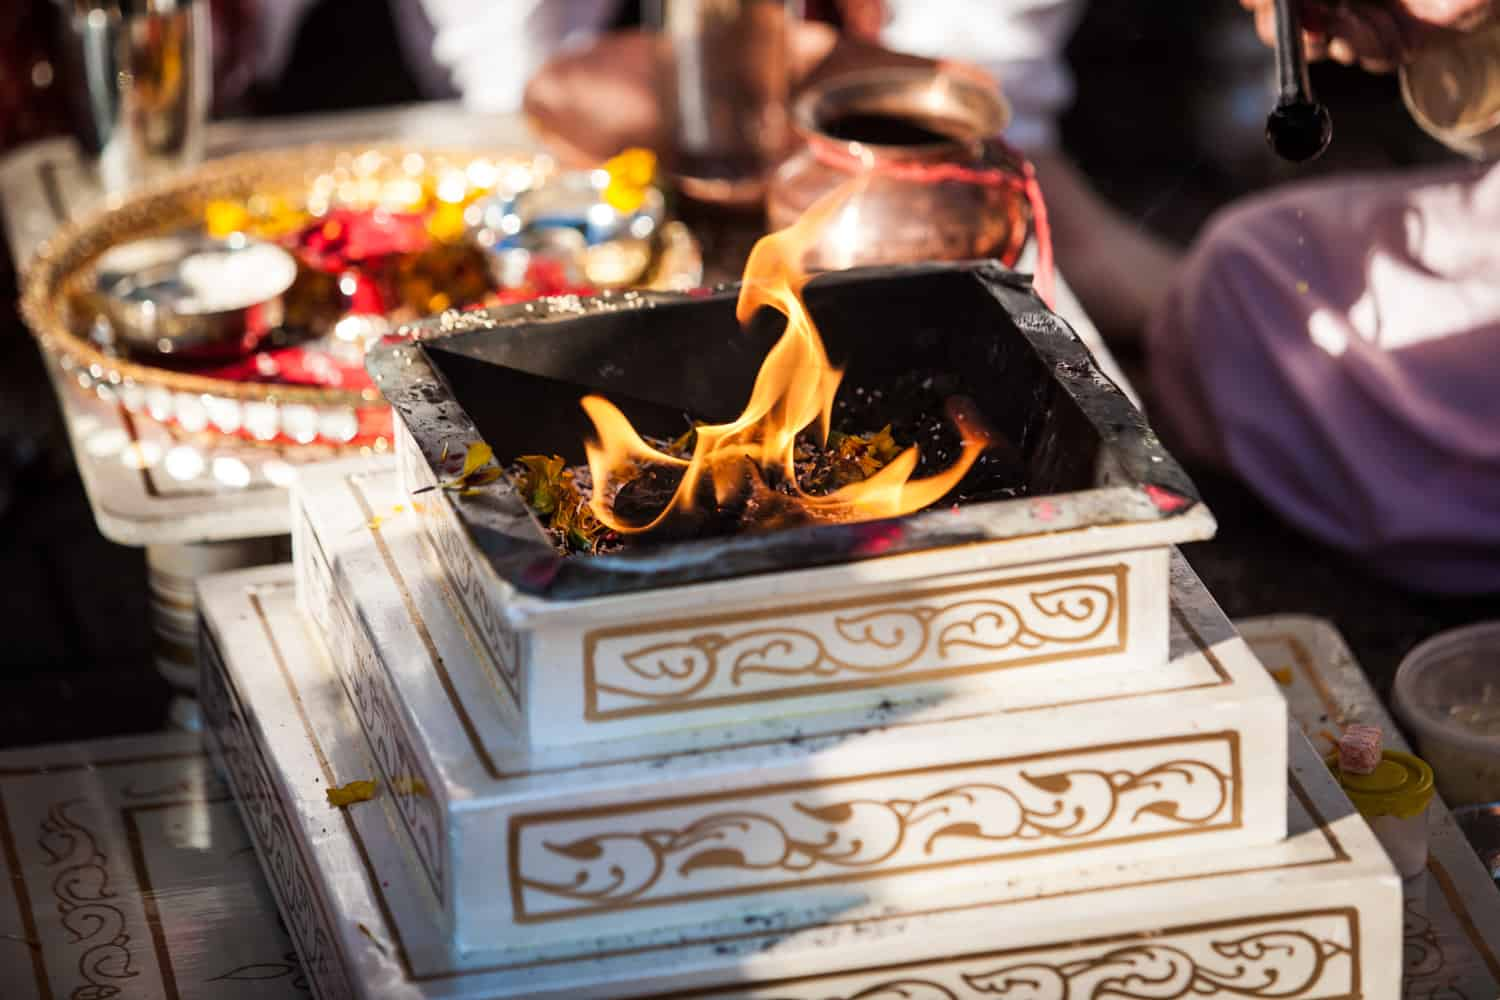 Close up on fire during traditional Hindu wedding ceremony